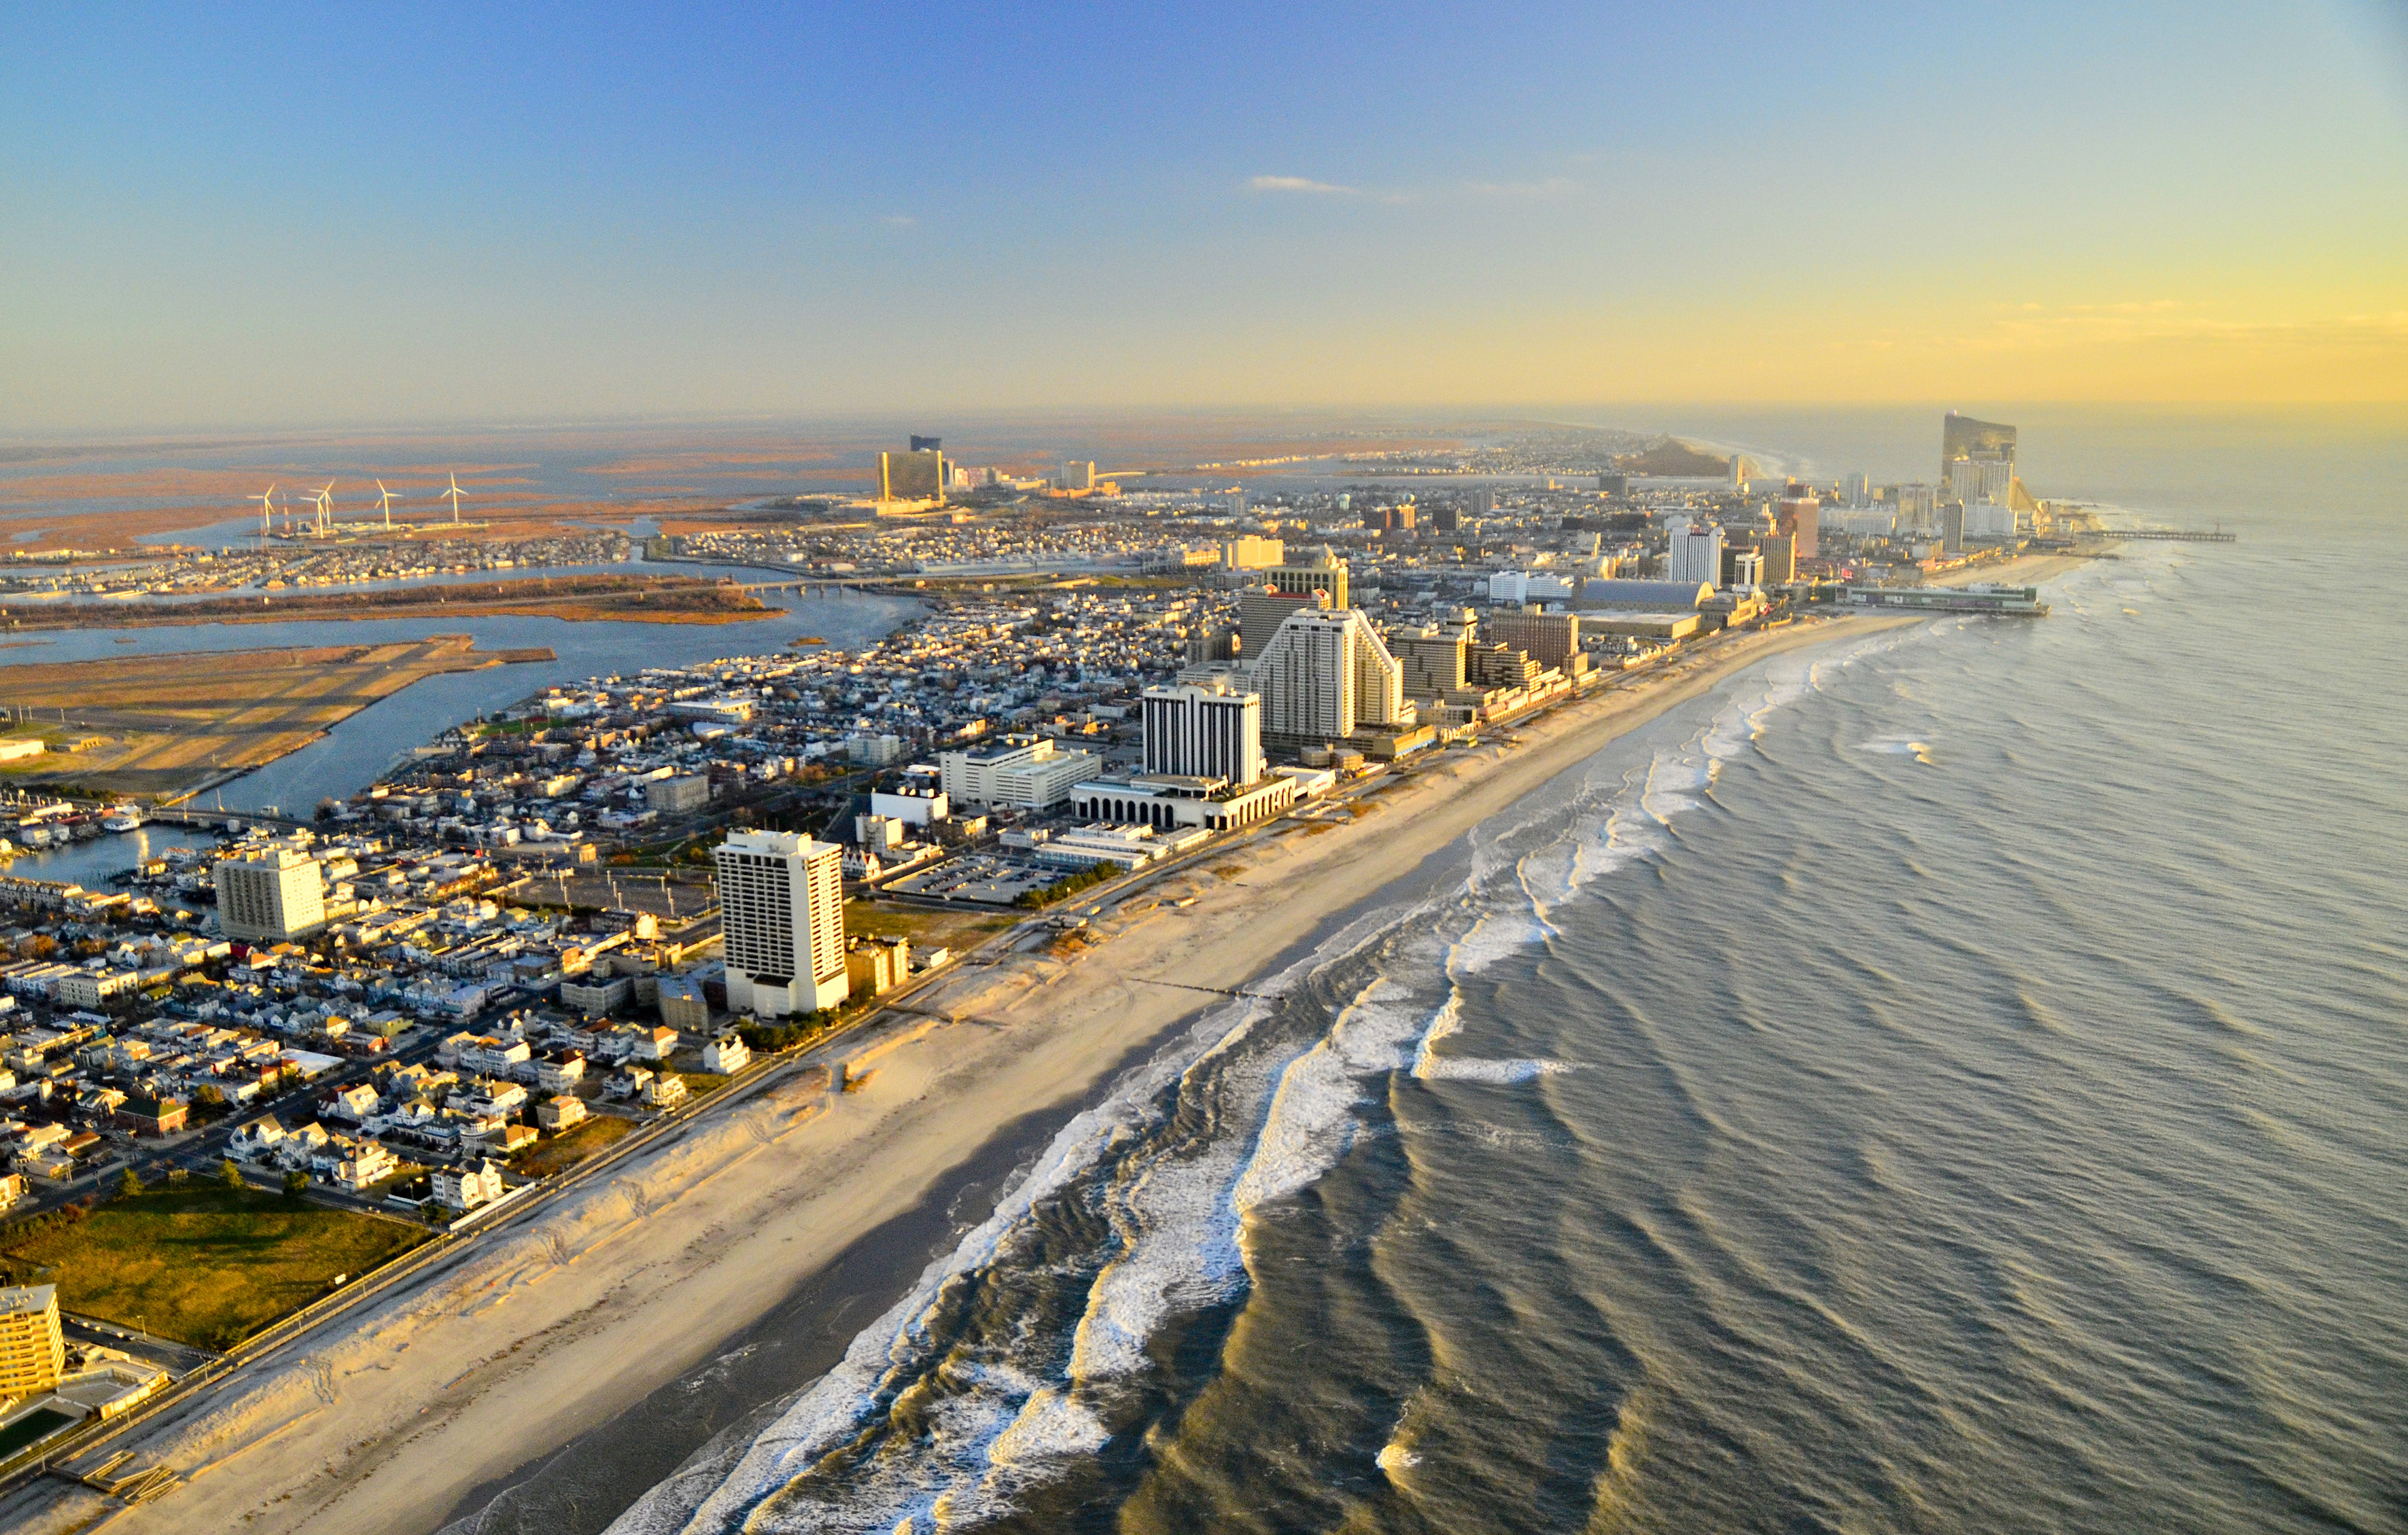 maryland on map of usa with Decouvrir Atlantic City Et Ses Casinos on 5193726680 furthermore 75791759 additionally ohwy further 46057557 further Top 2 Things To Do In Atlanta With Kids Plus A Few More.